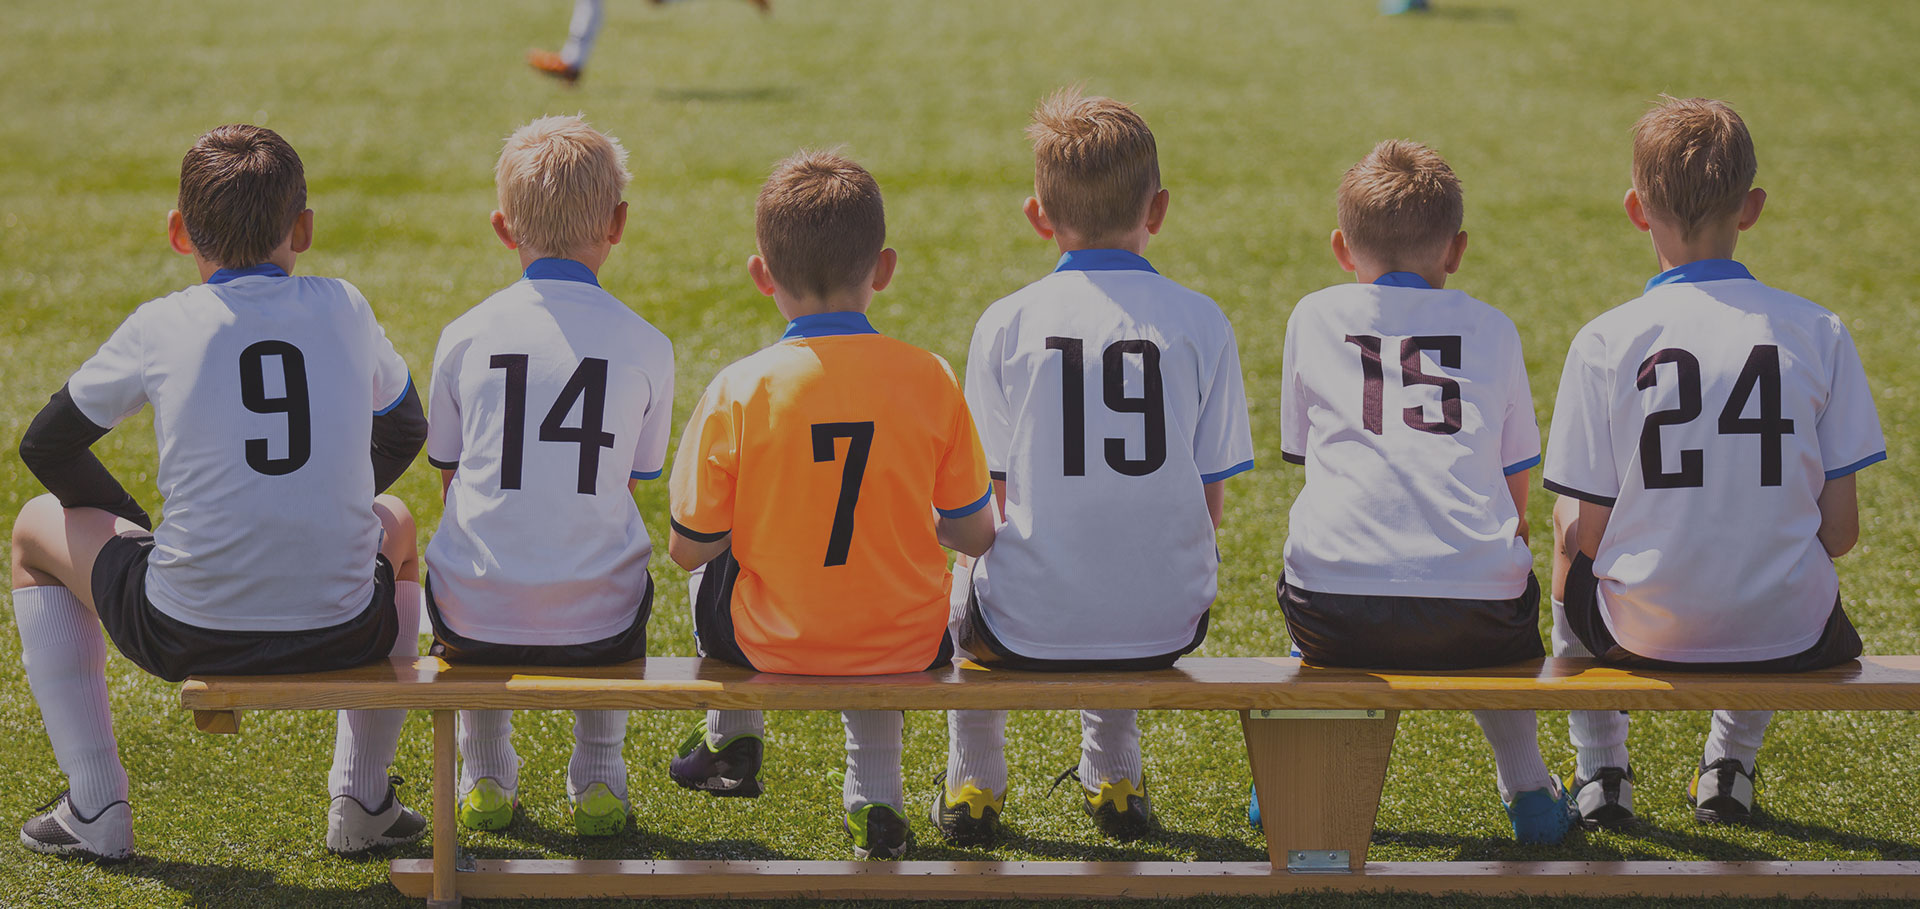 Injury Prevention in Young Athletes